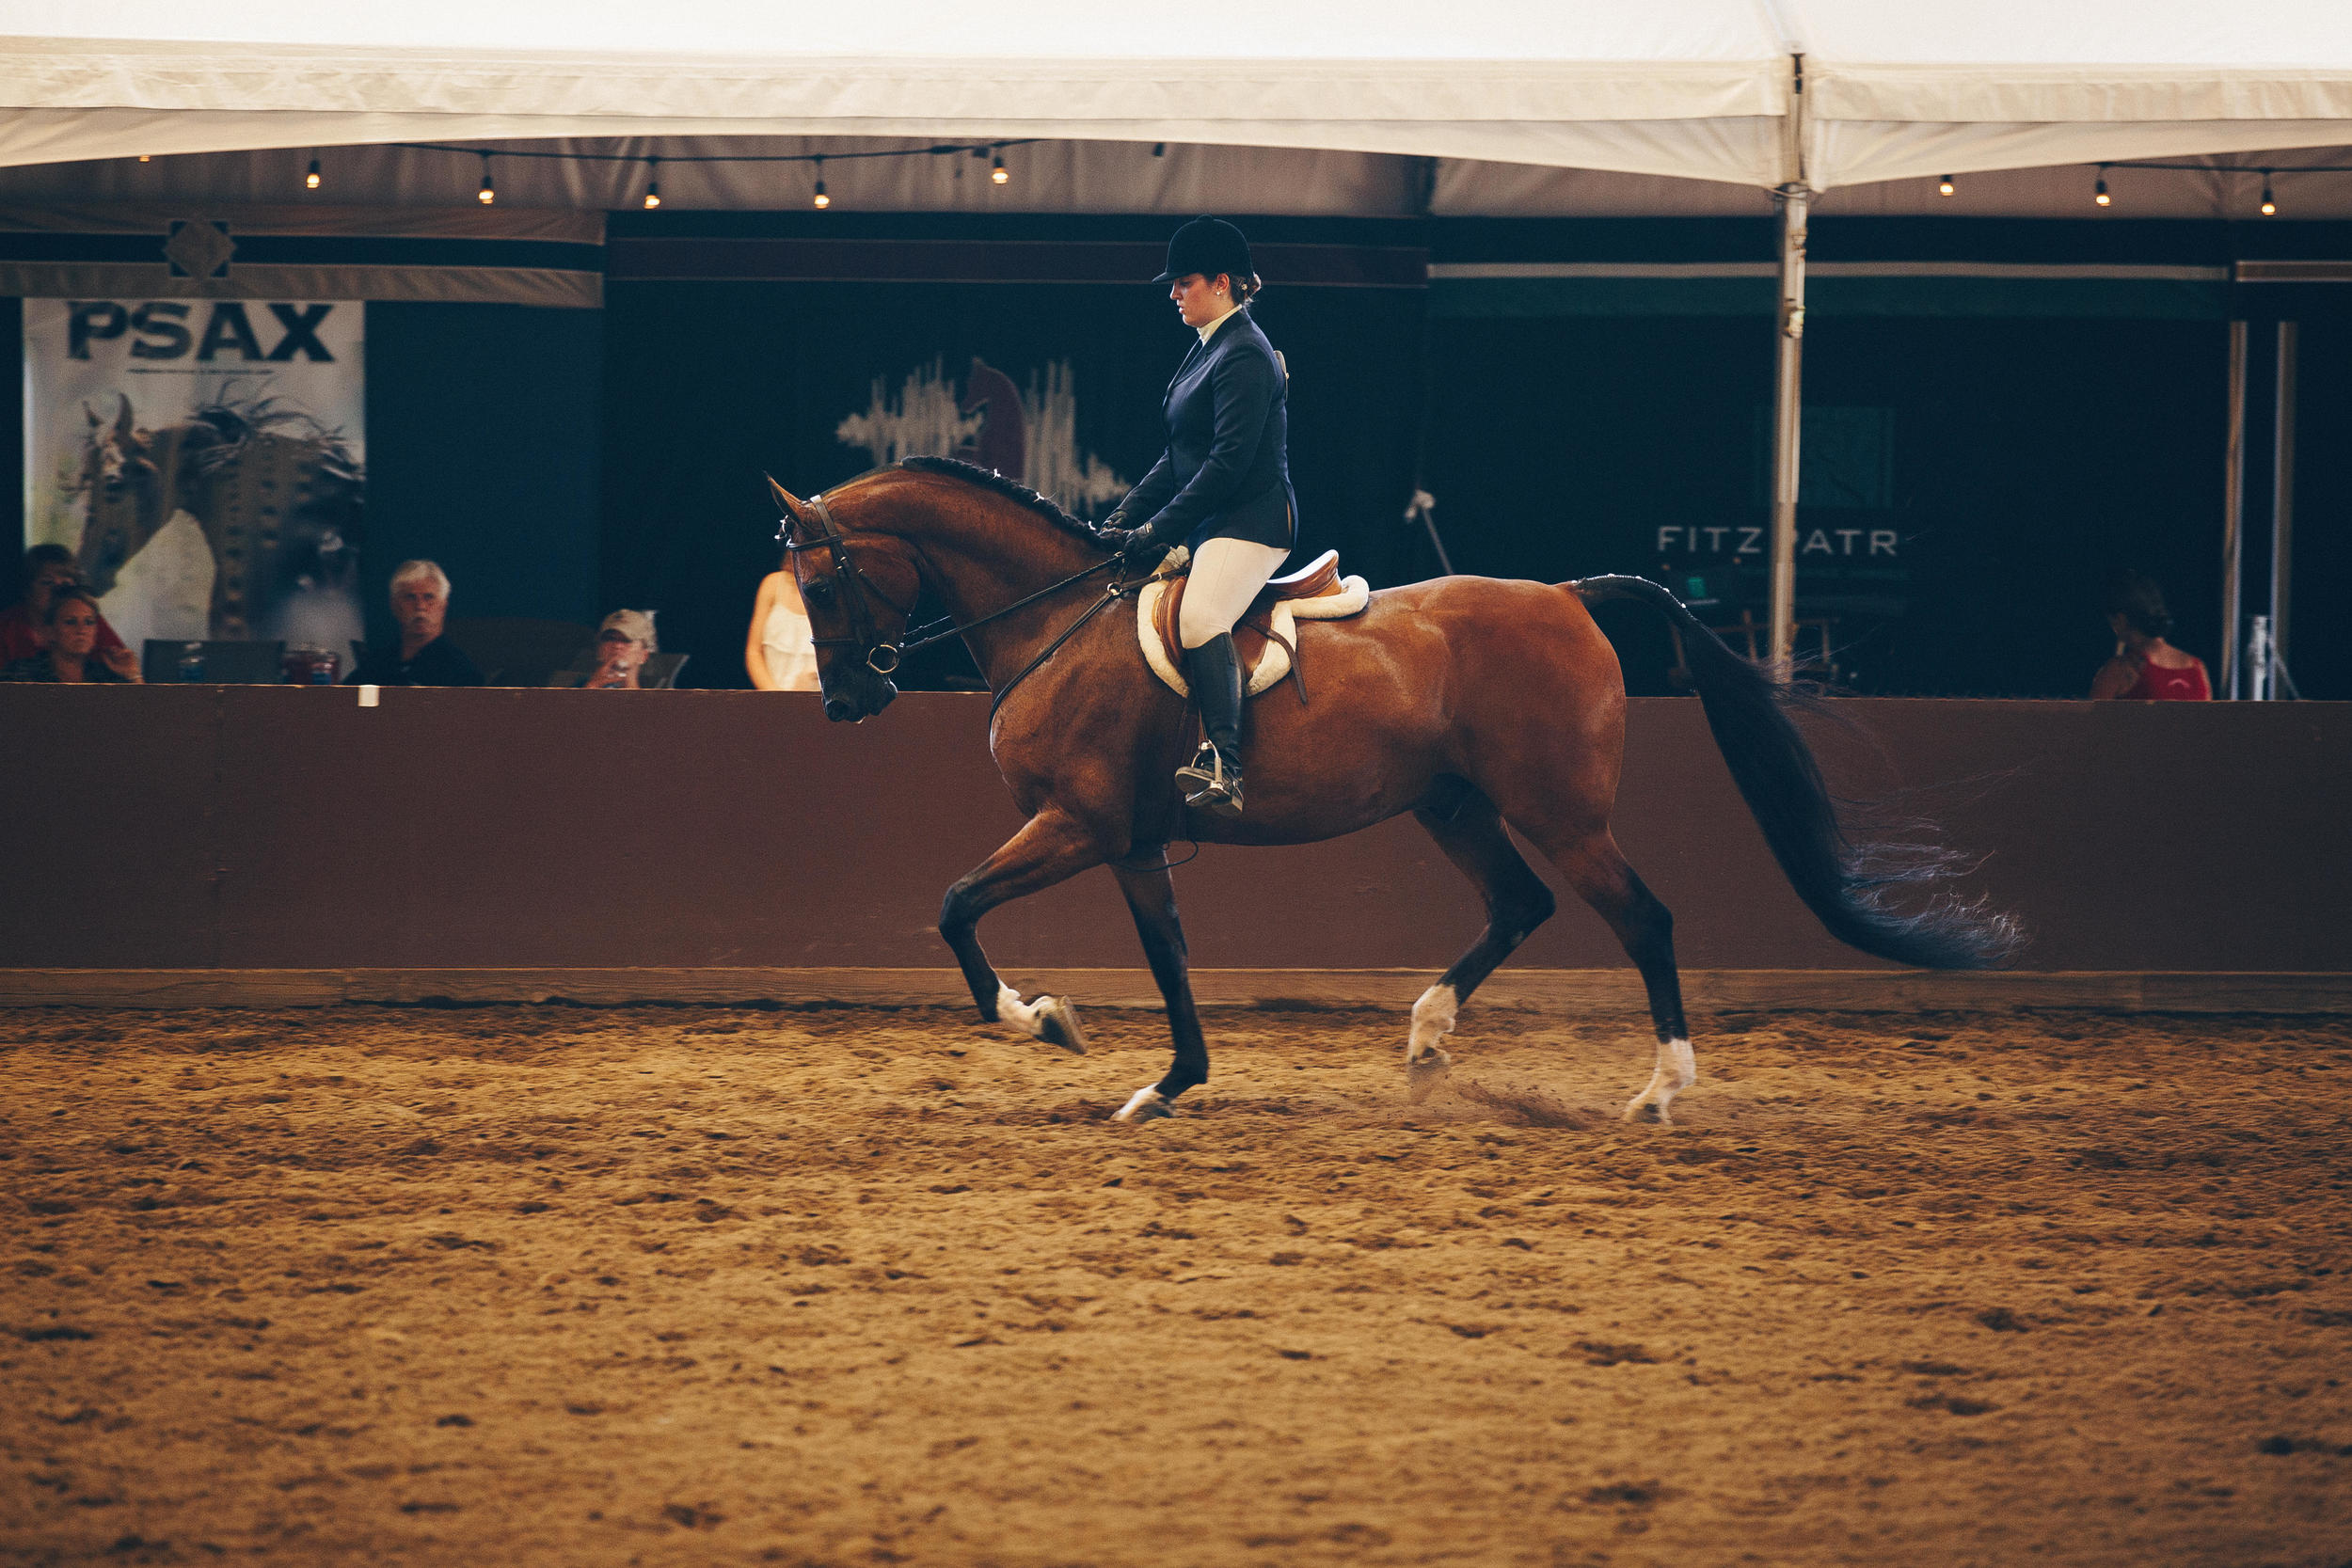 26639_20160713144849_2016_07_13_PaigeWinterHorseShow_SeesTheDay-Edit.jpg